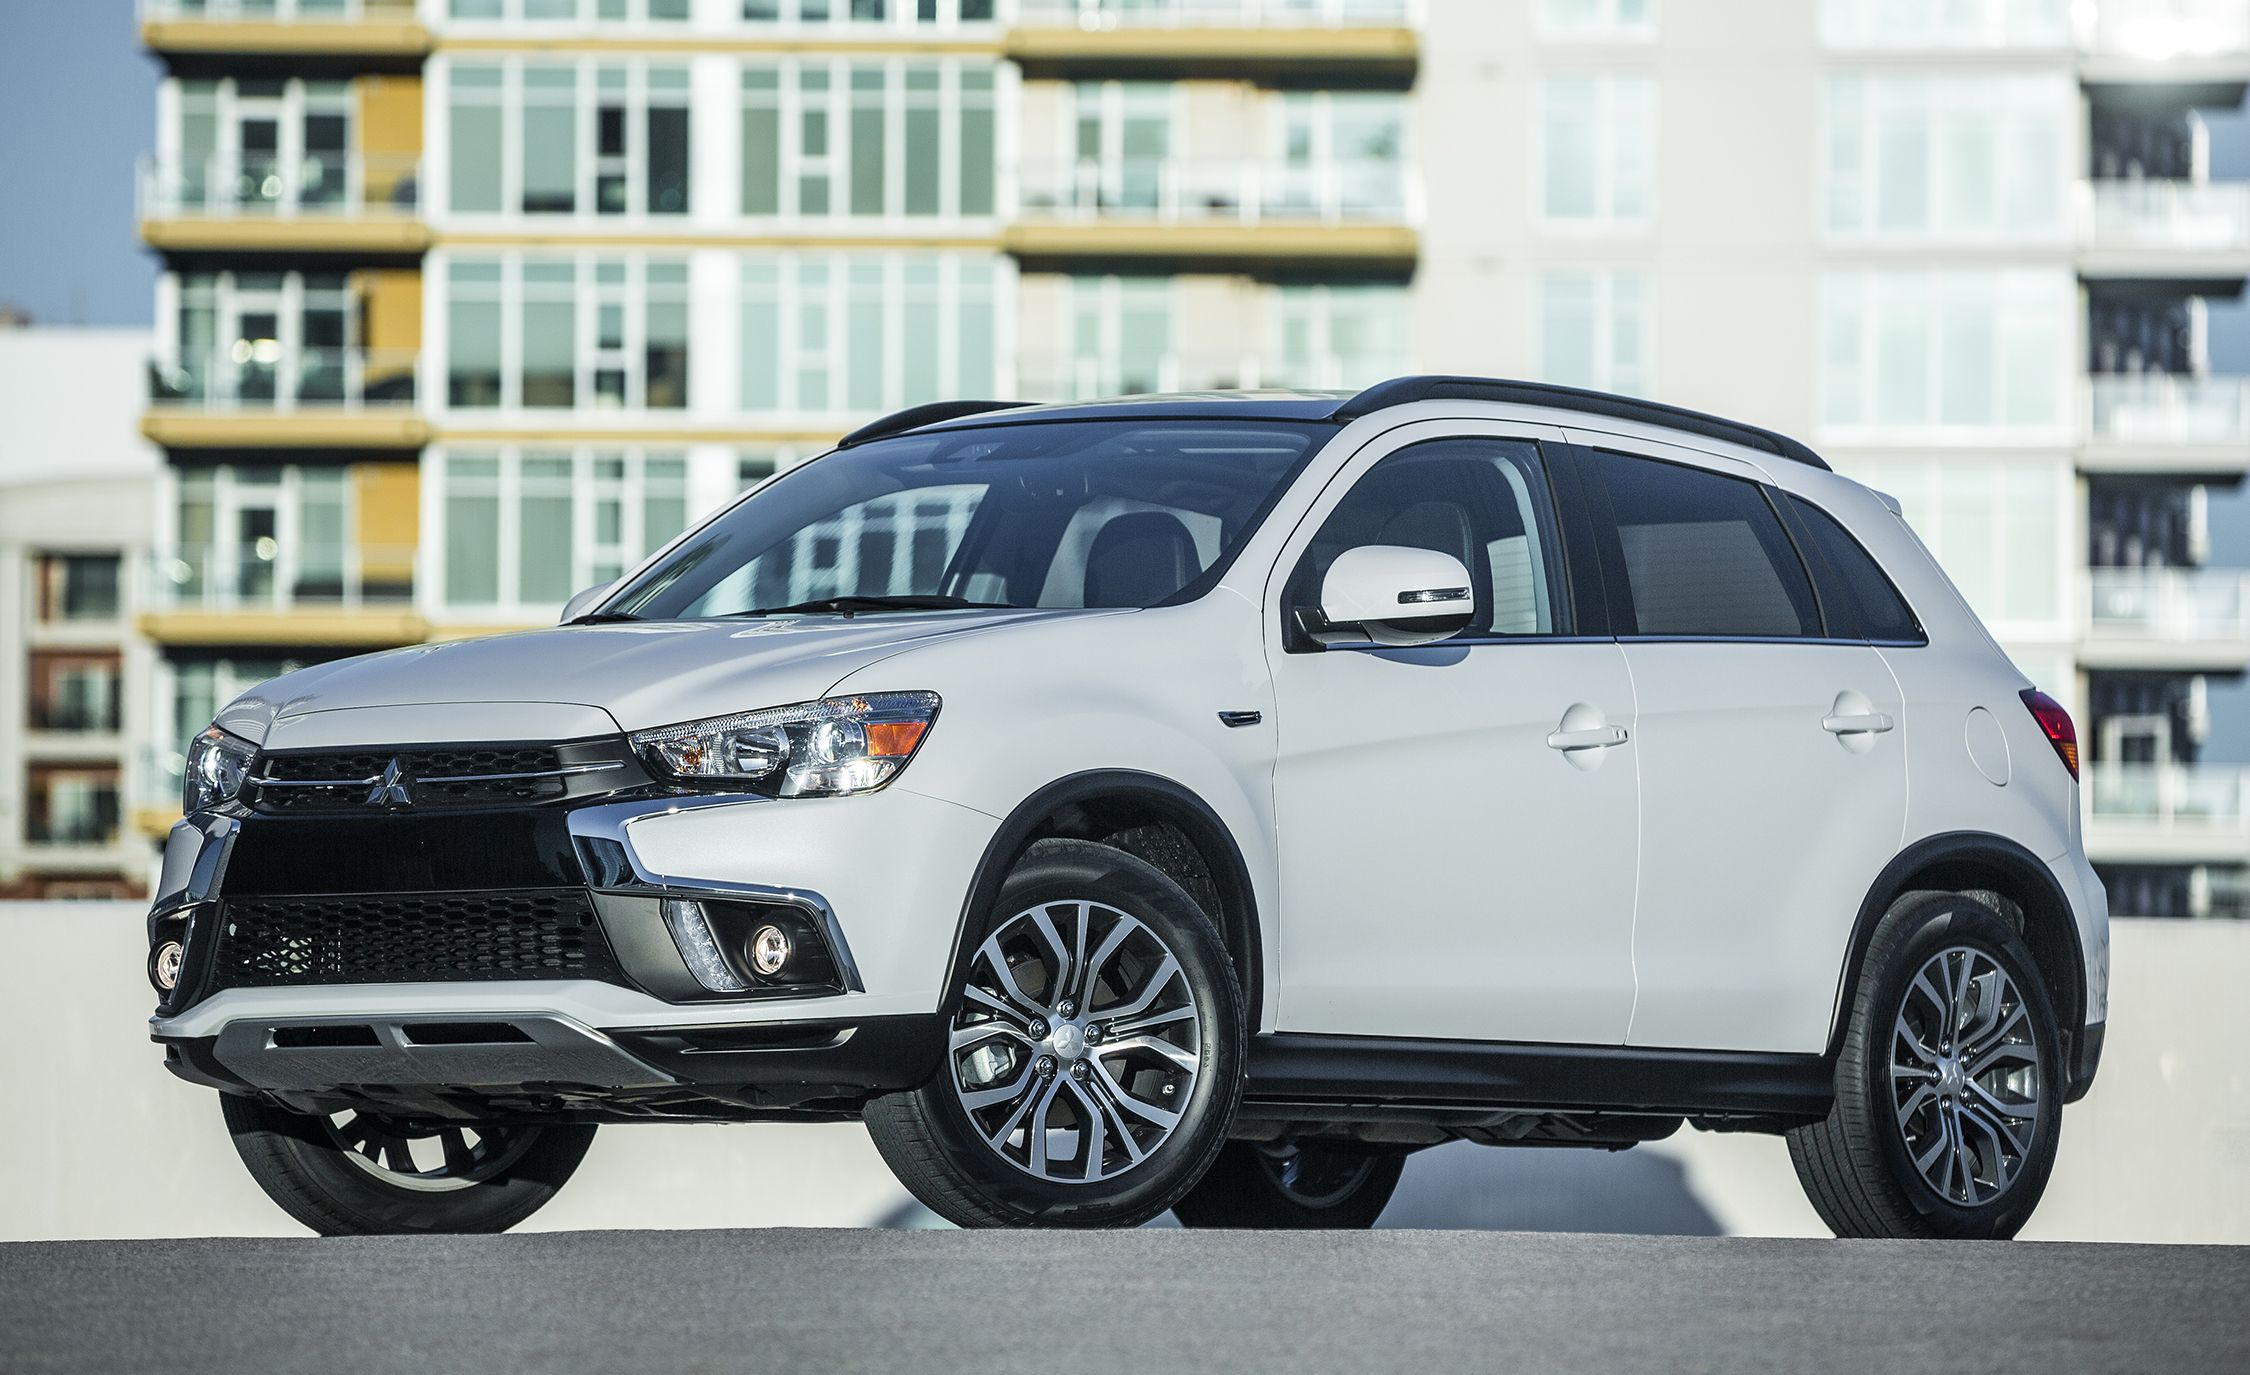 2018 Mitsubishi Outlander Sport: New Look, New Tech